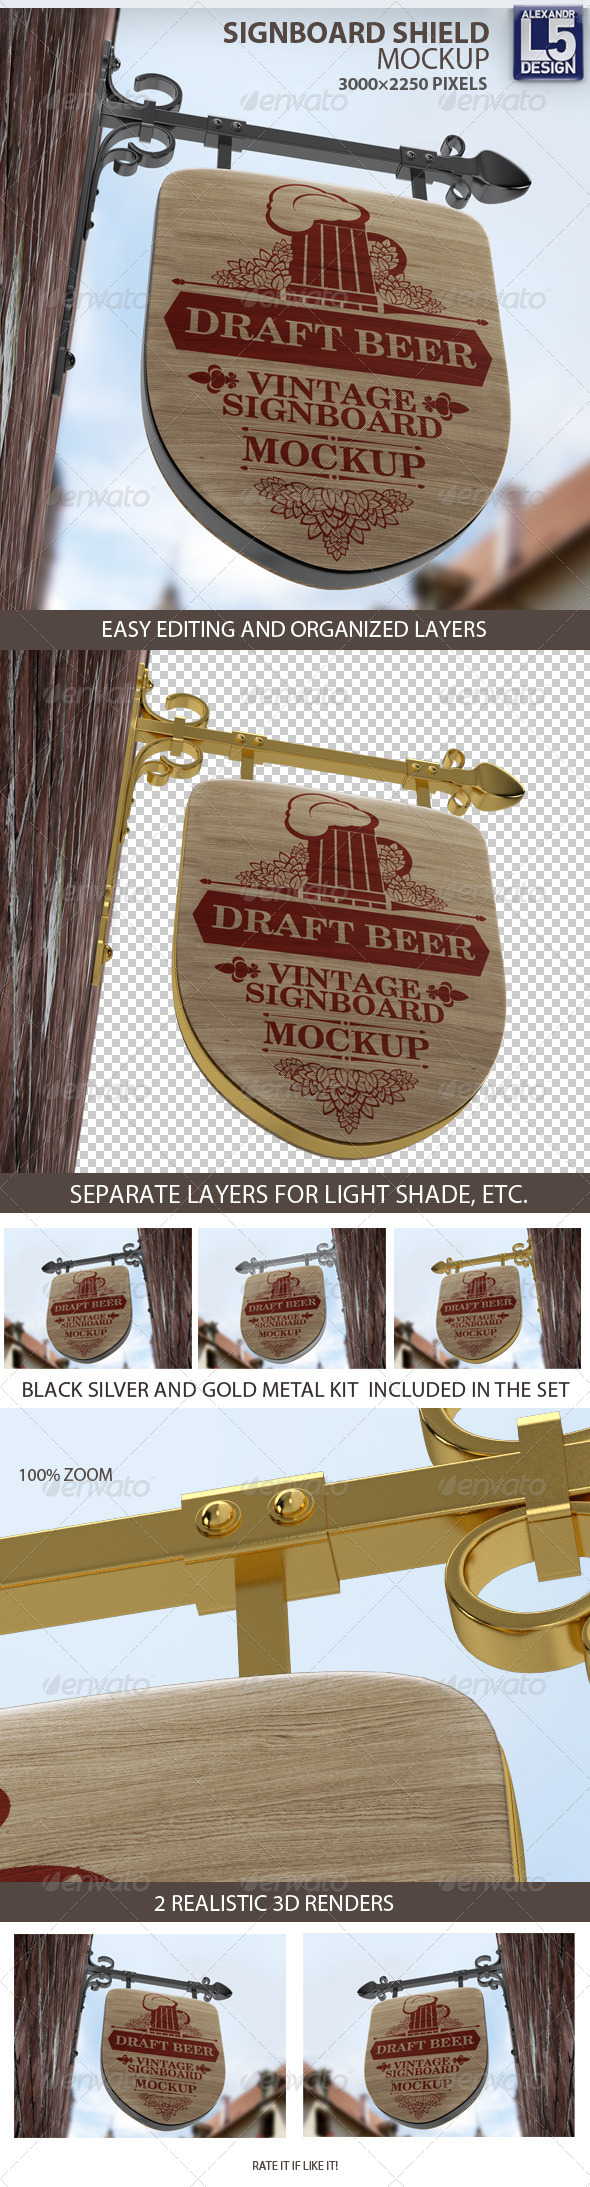 Vintage Signboard Shield Mock-Up - Product Mock-Ups Graphics